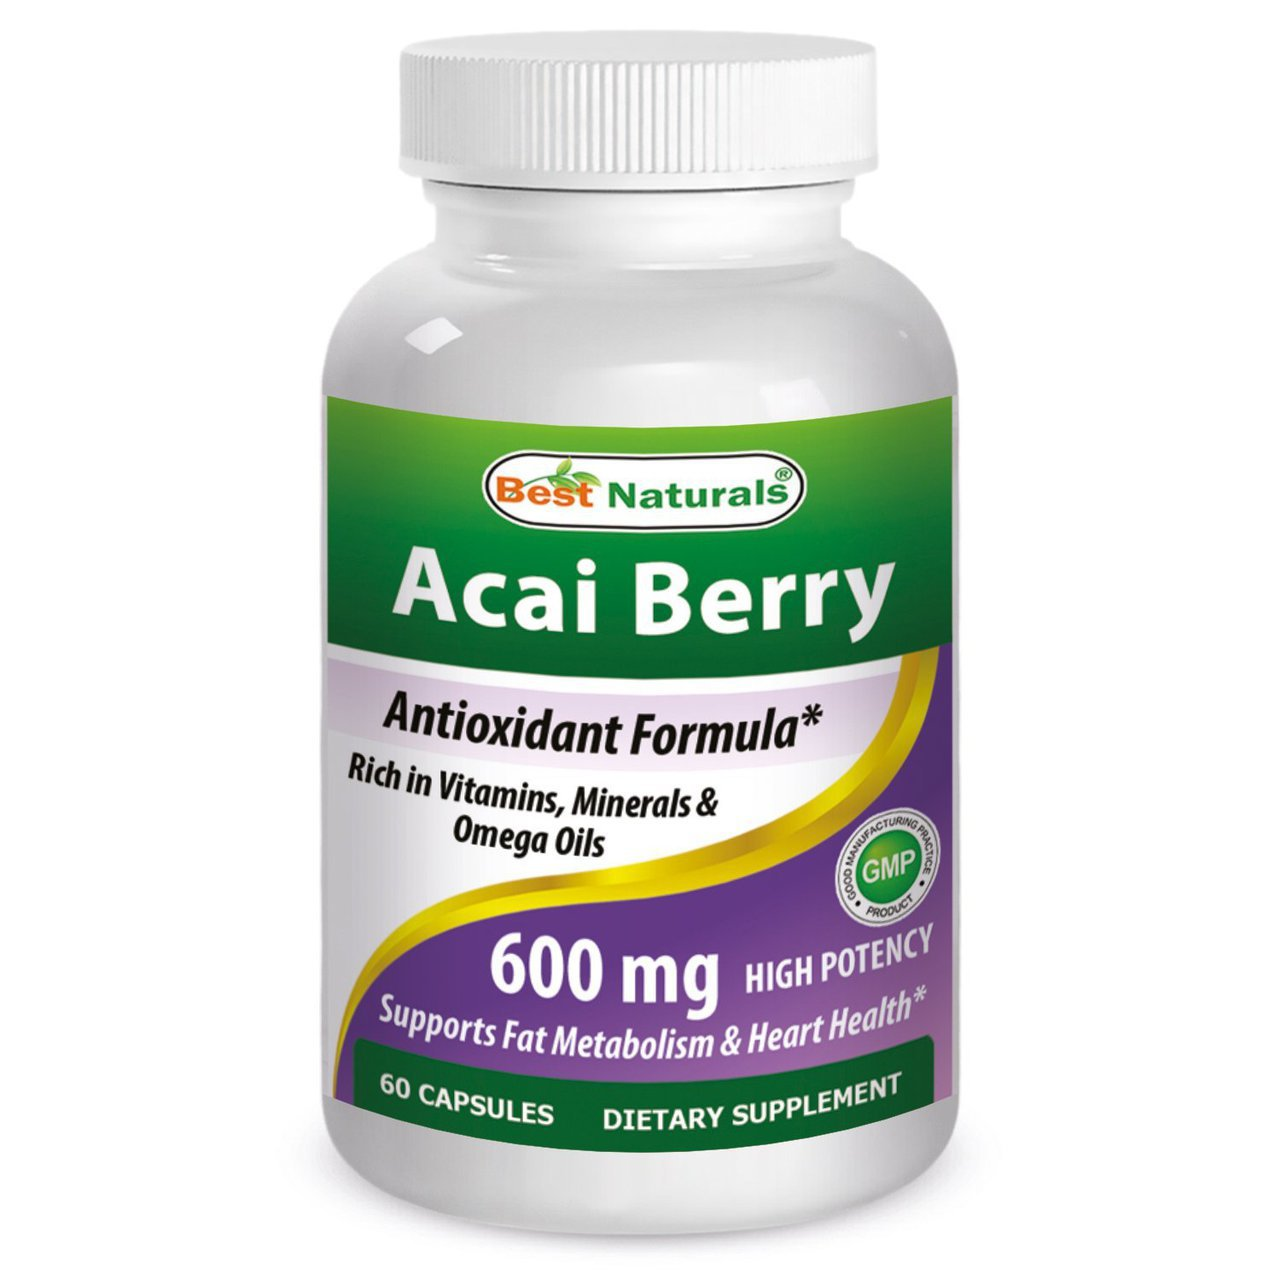 Best Naturals Acai Berry 600 mg 60 Capsules